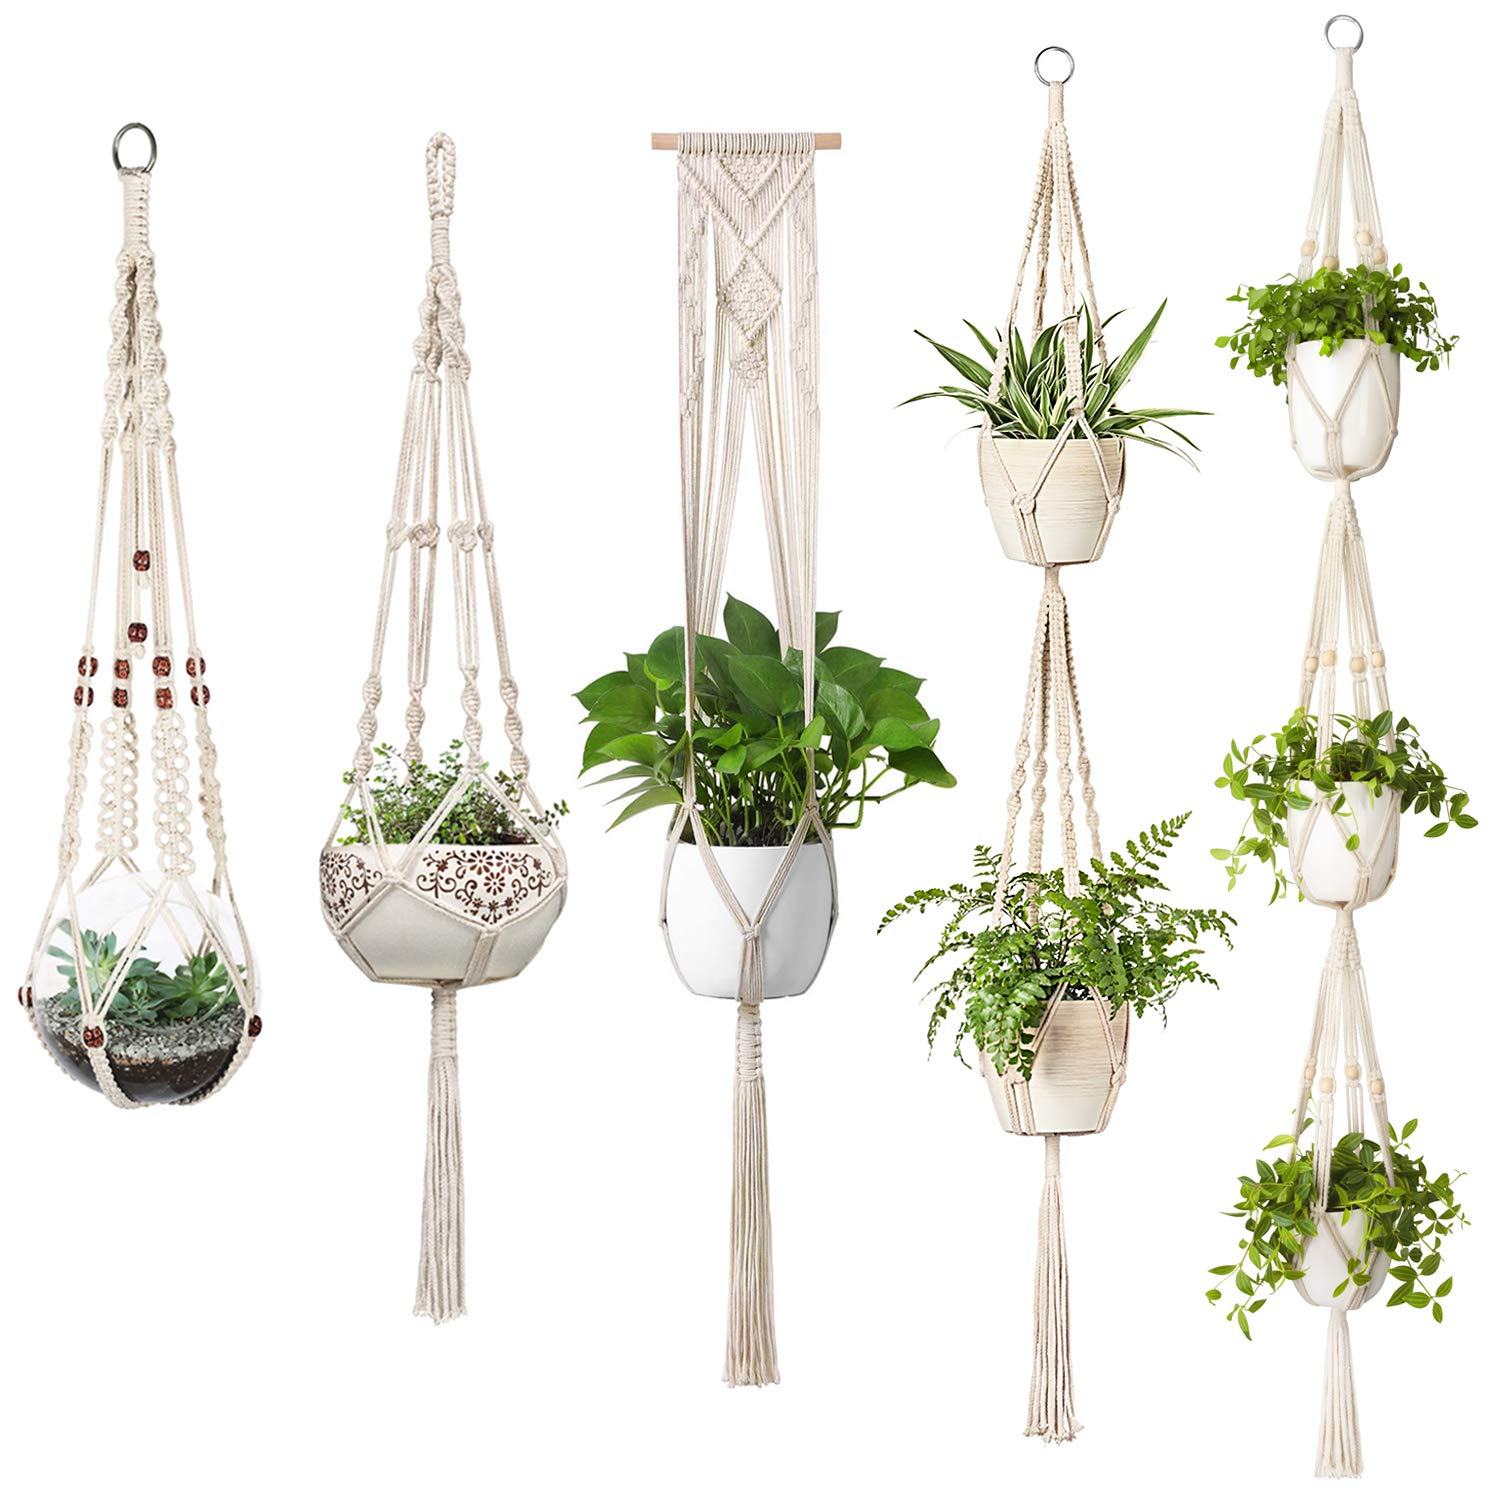 225 & Mkono Macrame Plant Hangers 5 Pack Different Tiers Indoor Hanging Planters Set Flower Pots Holder Stand Boho Home Decor